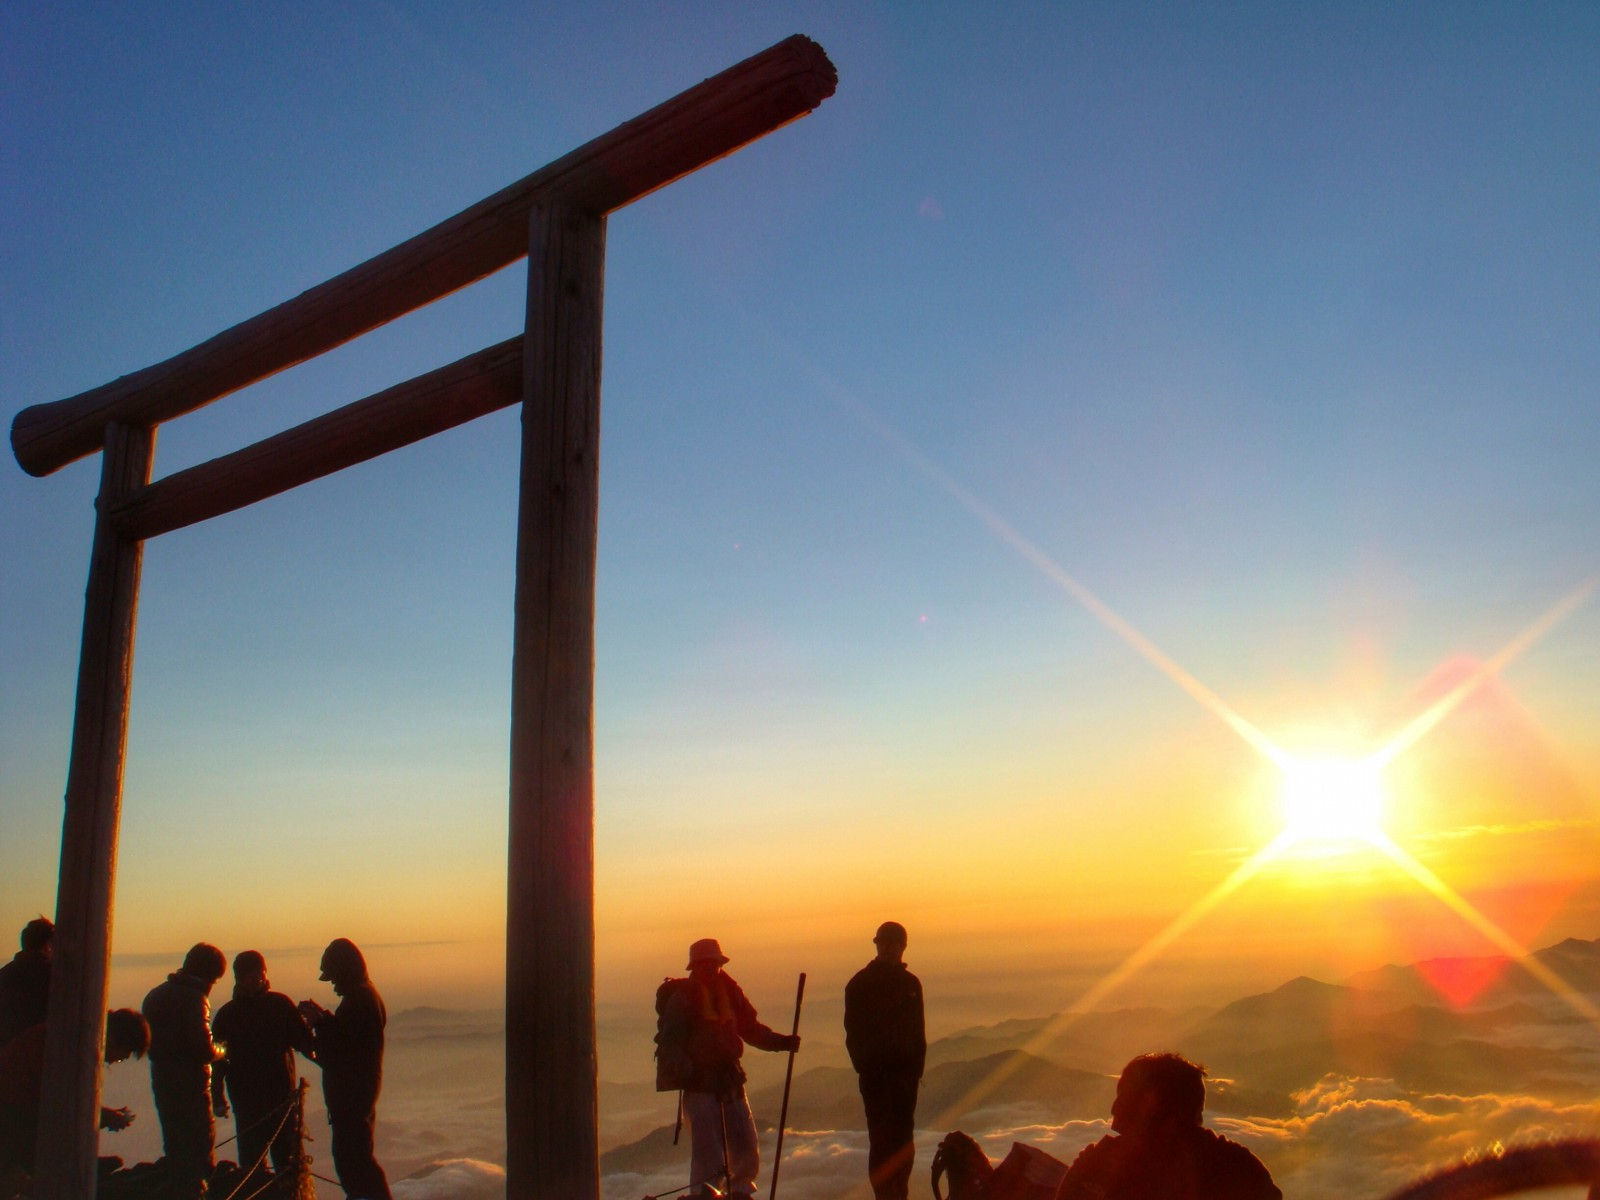 Watching the sunrise at the summit of Mt Fuji